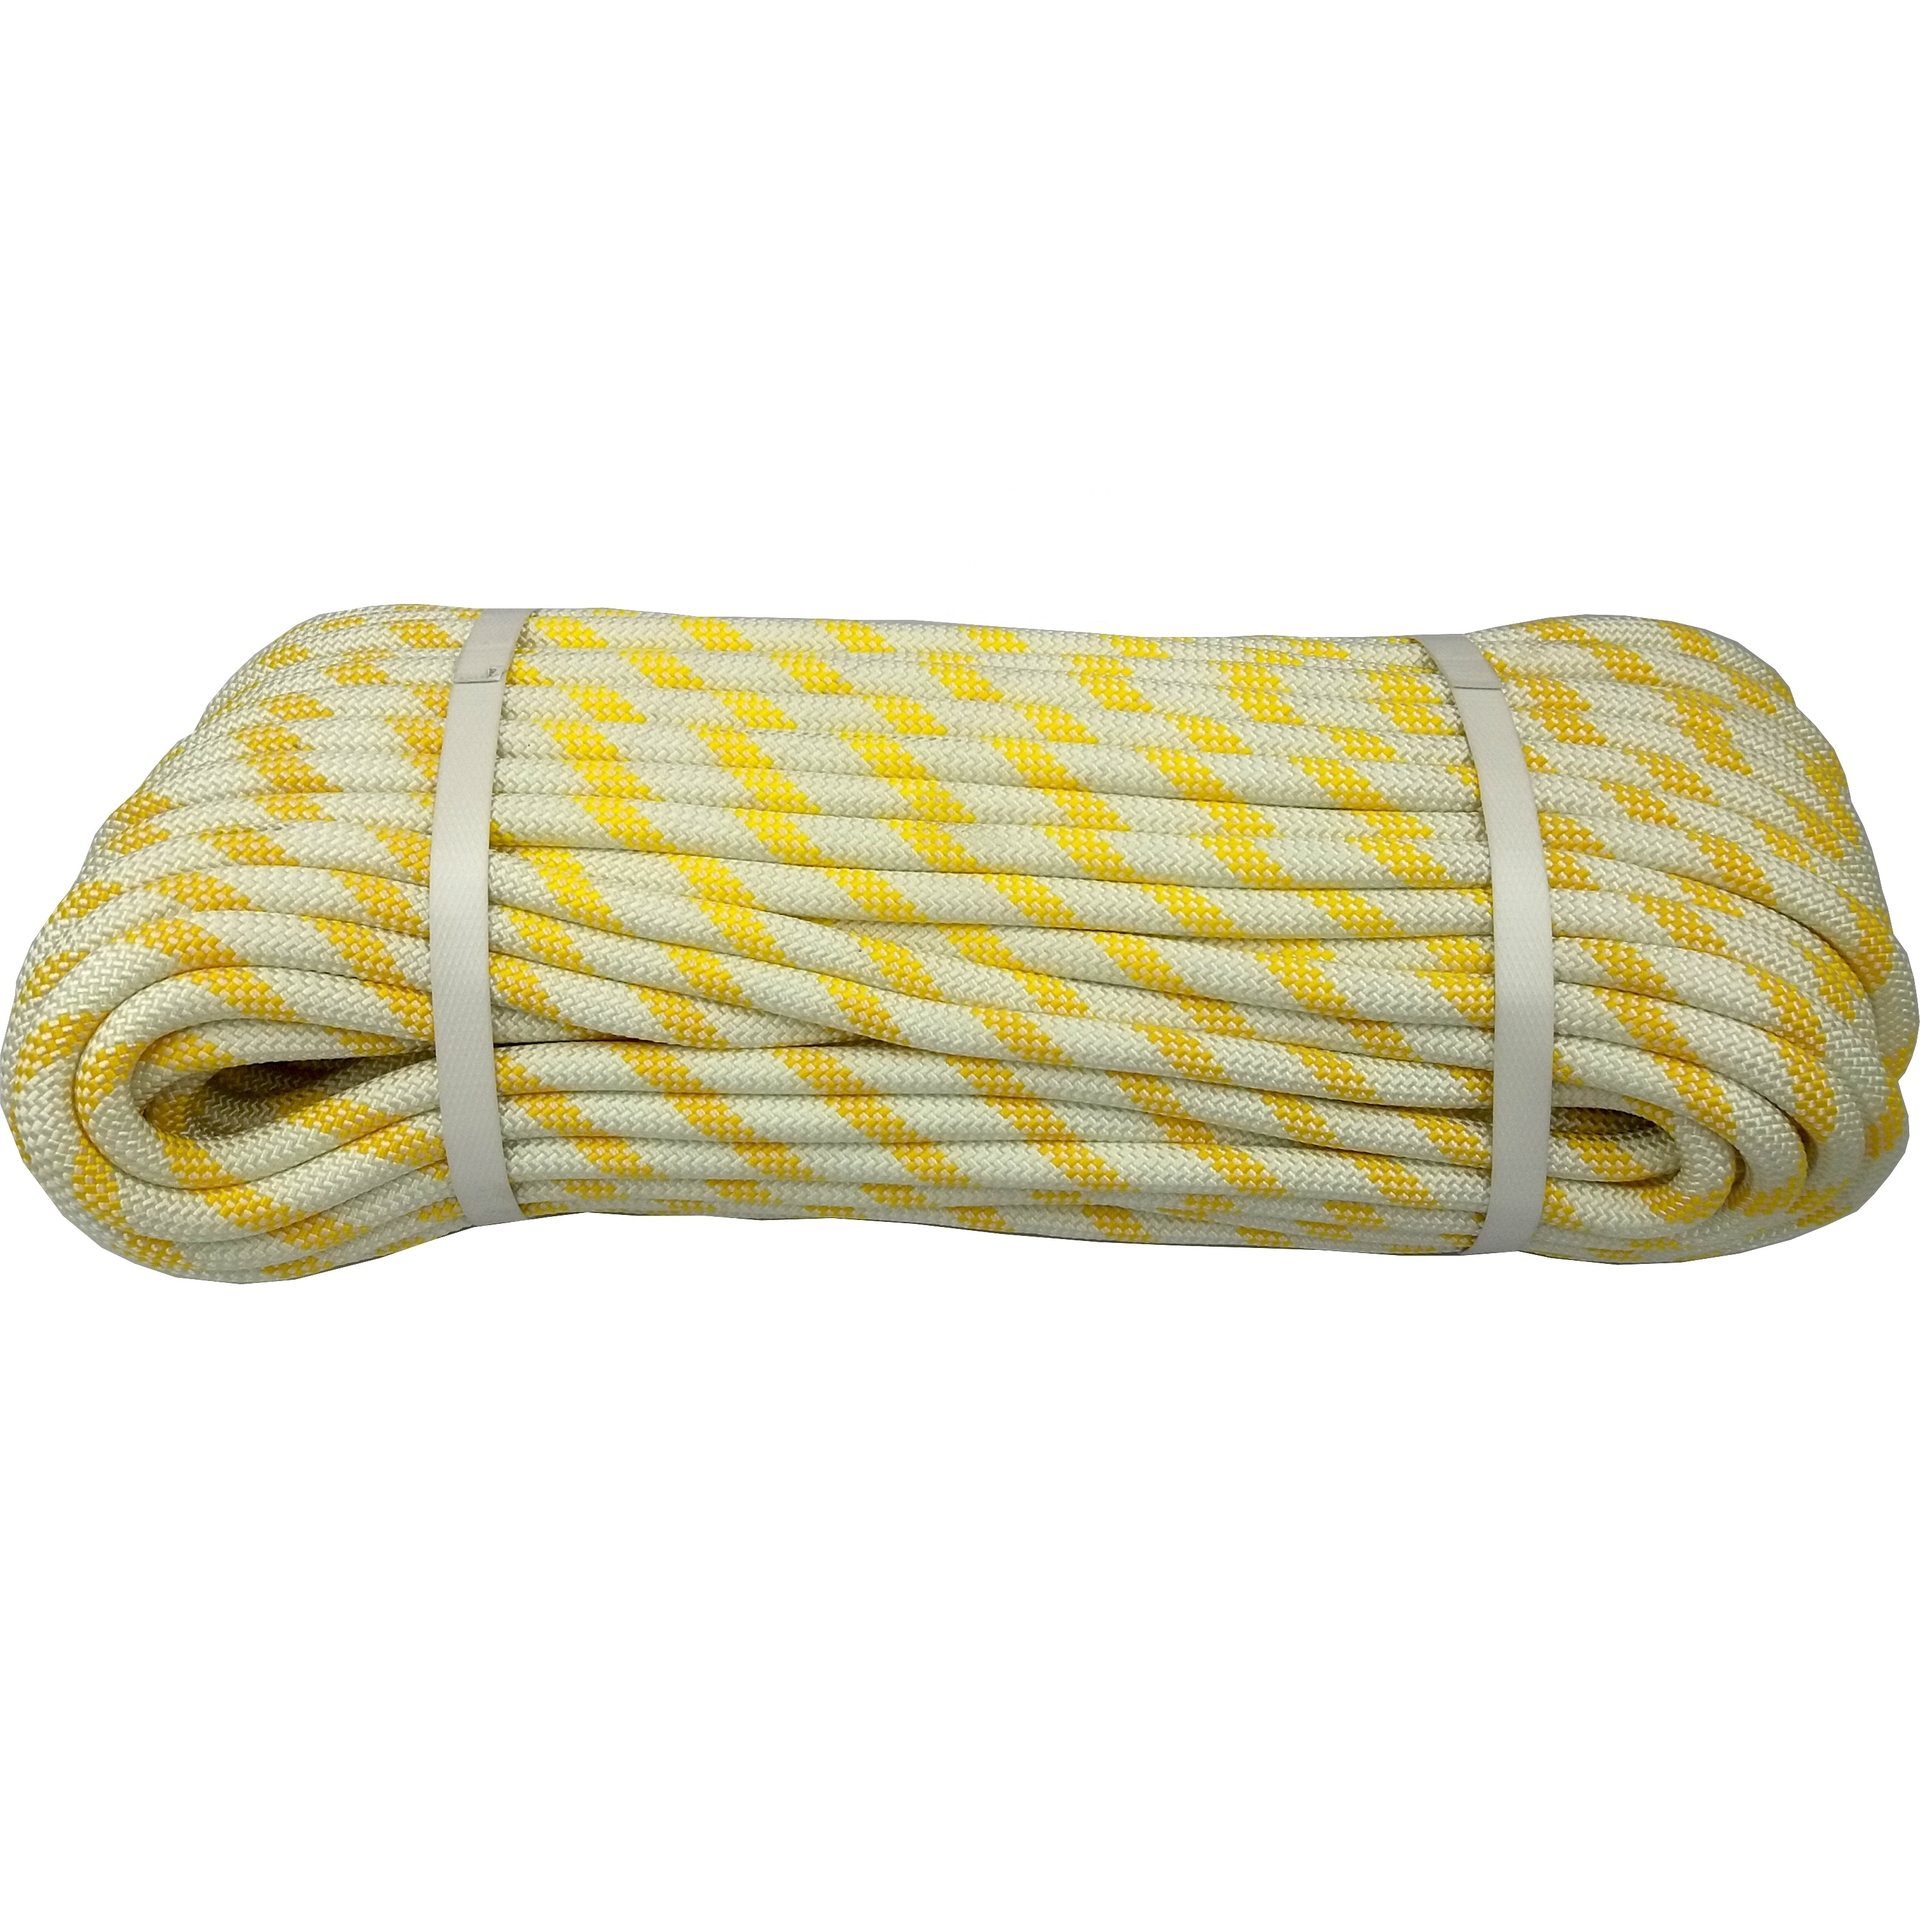 nylon 48 strand climbing rope for rescue safety rope